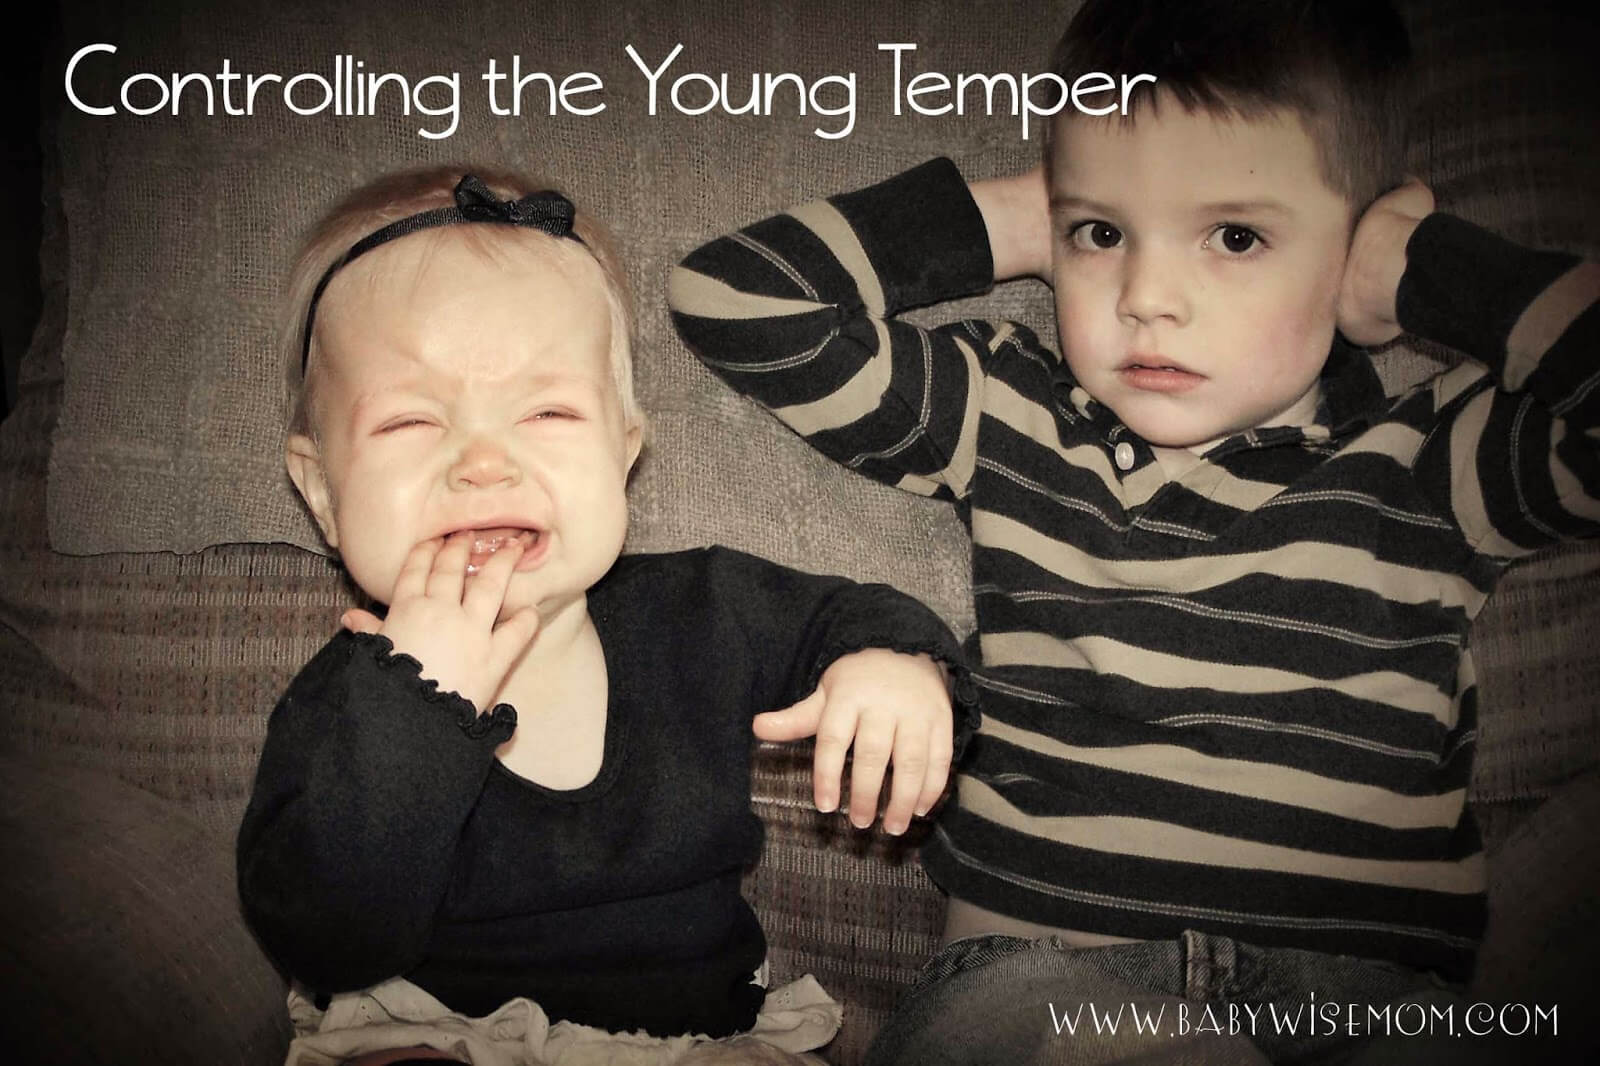 Controlling the young temper tips. What to do when your young toddler has a tantrum.